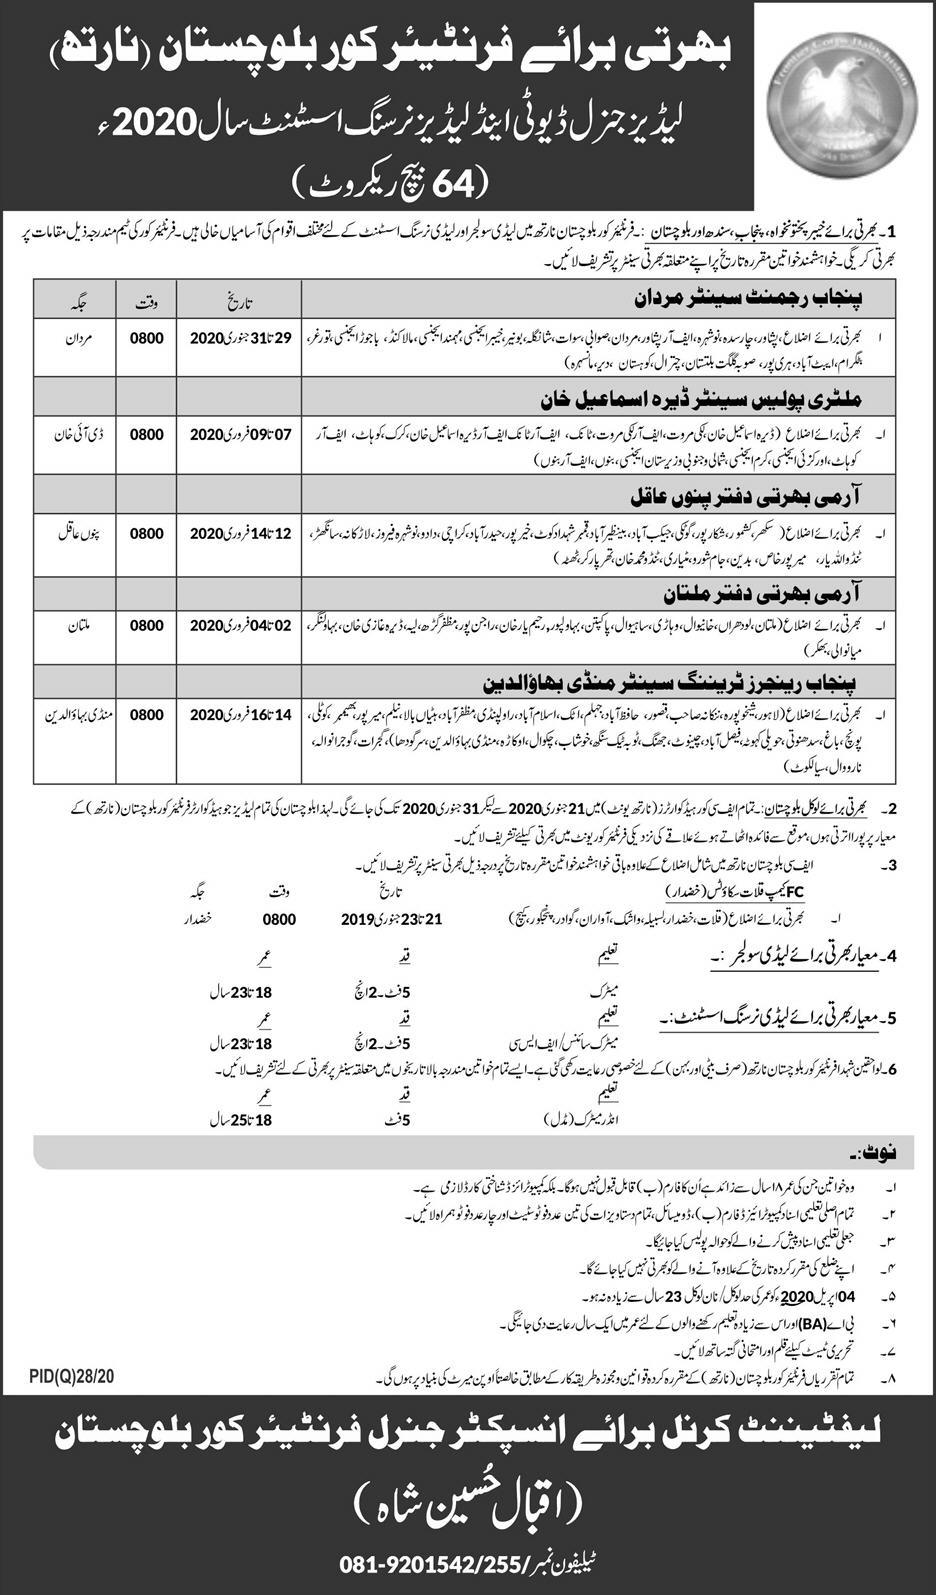 FC 2020 Frontier Corps Jobs - Pakistan Army FC Jobs